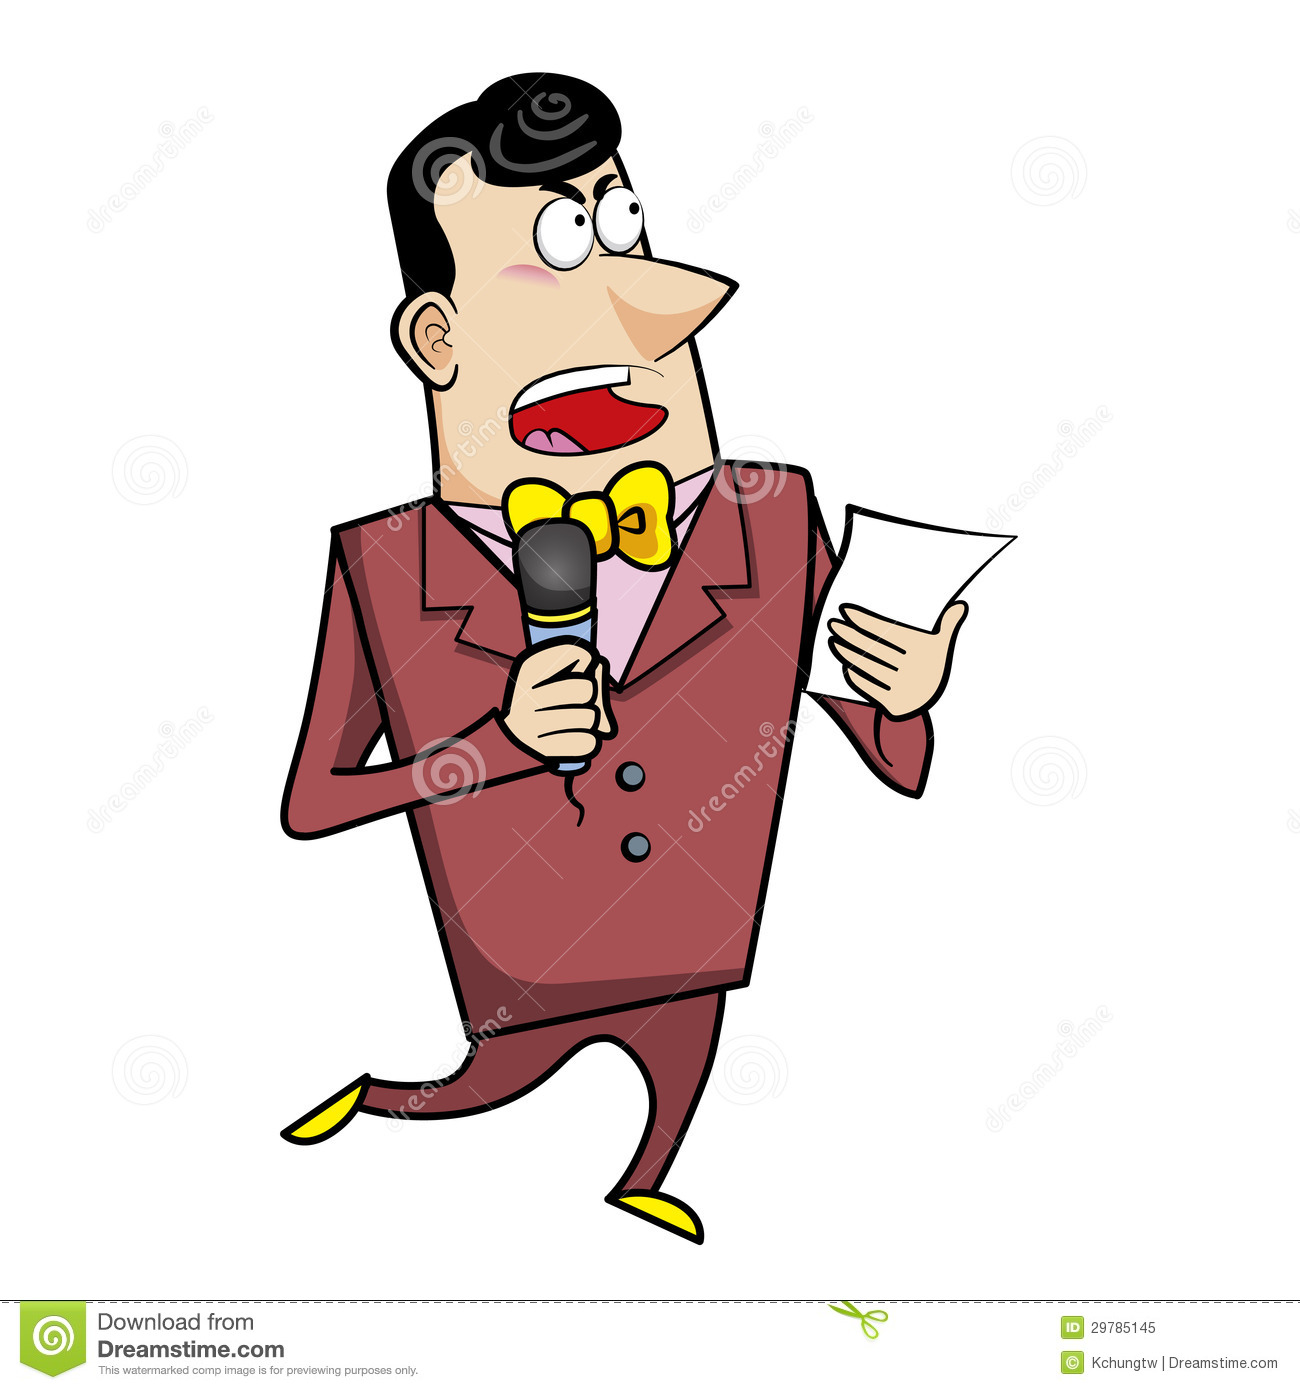 Cartoon Host Emcee With Microphone Royalty Free Stock Photo - Image ...